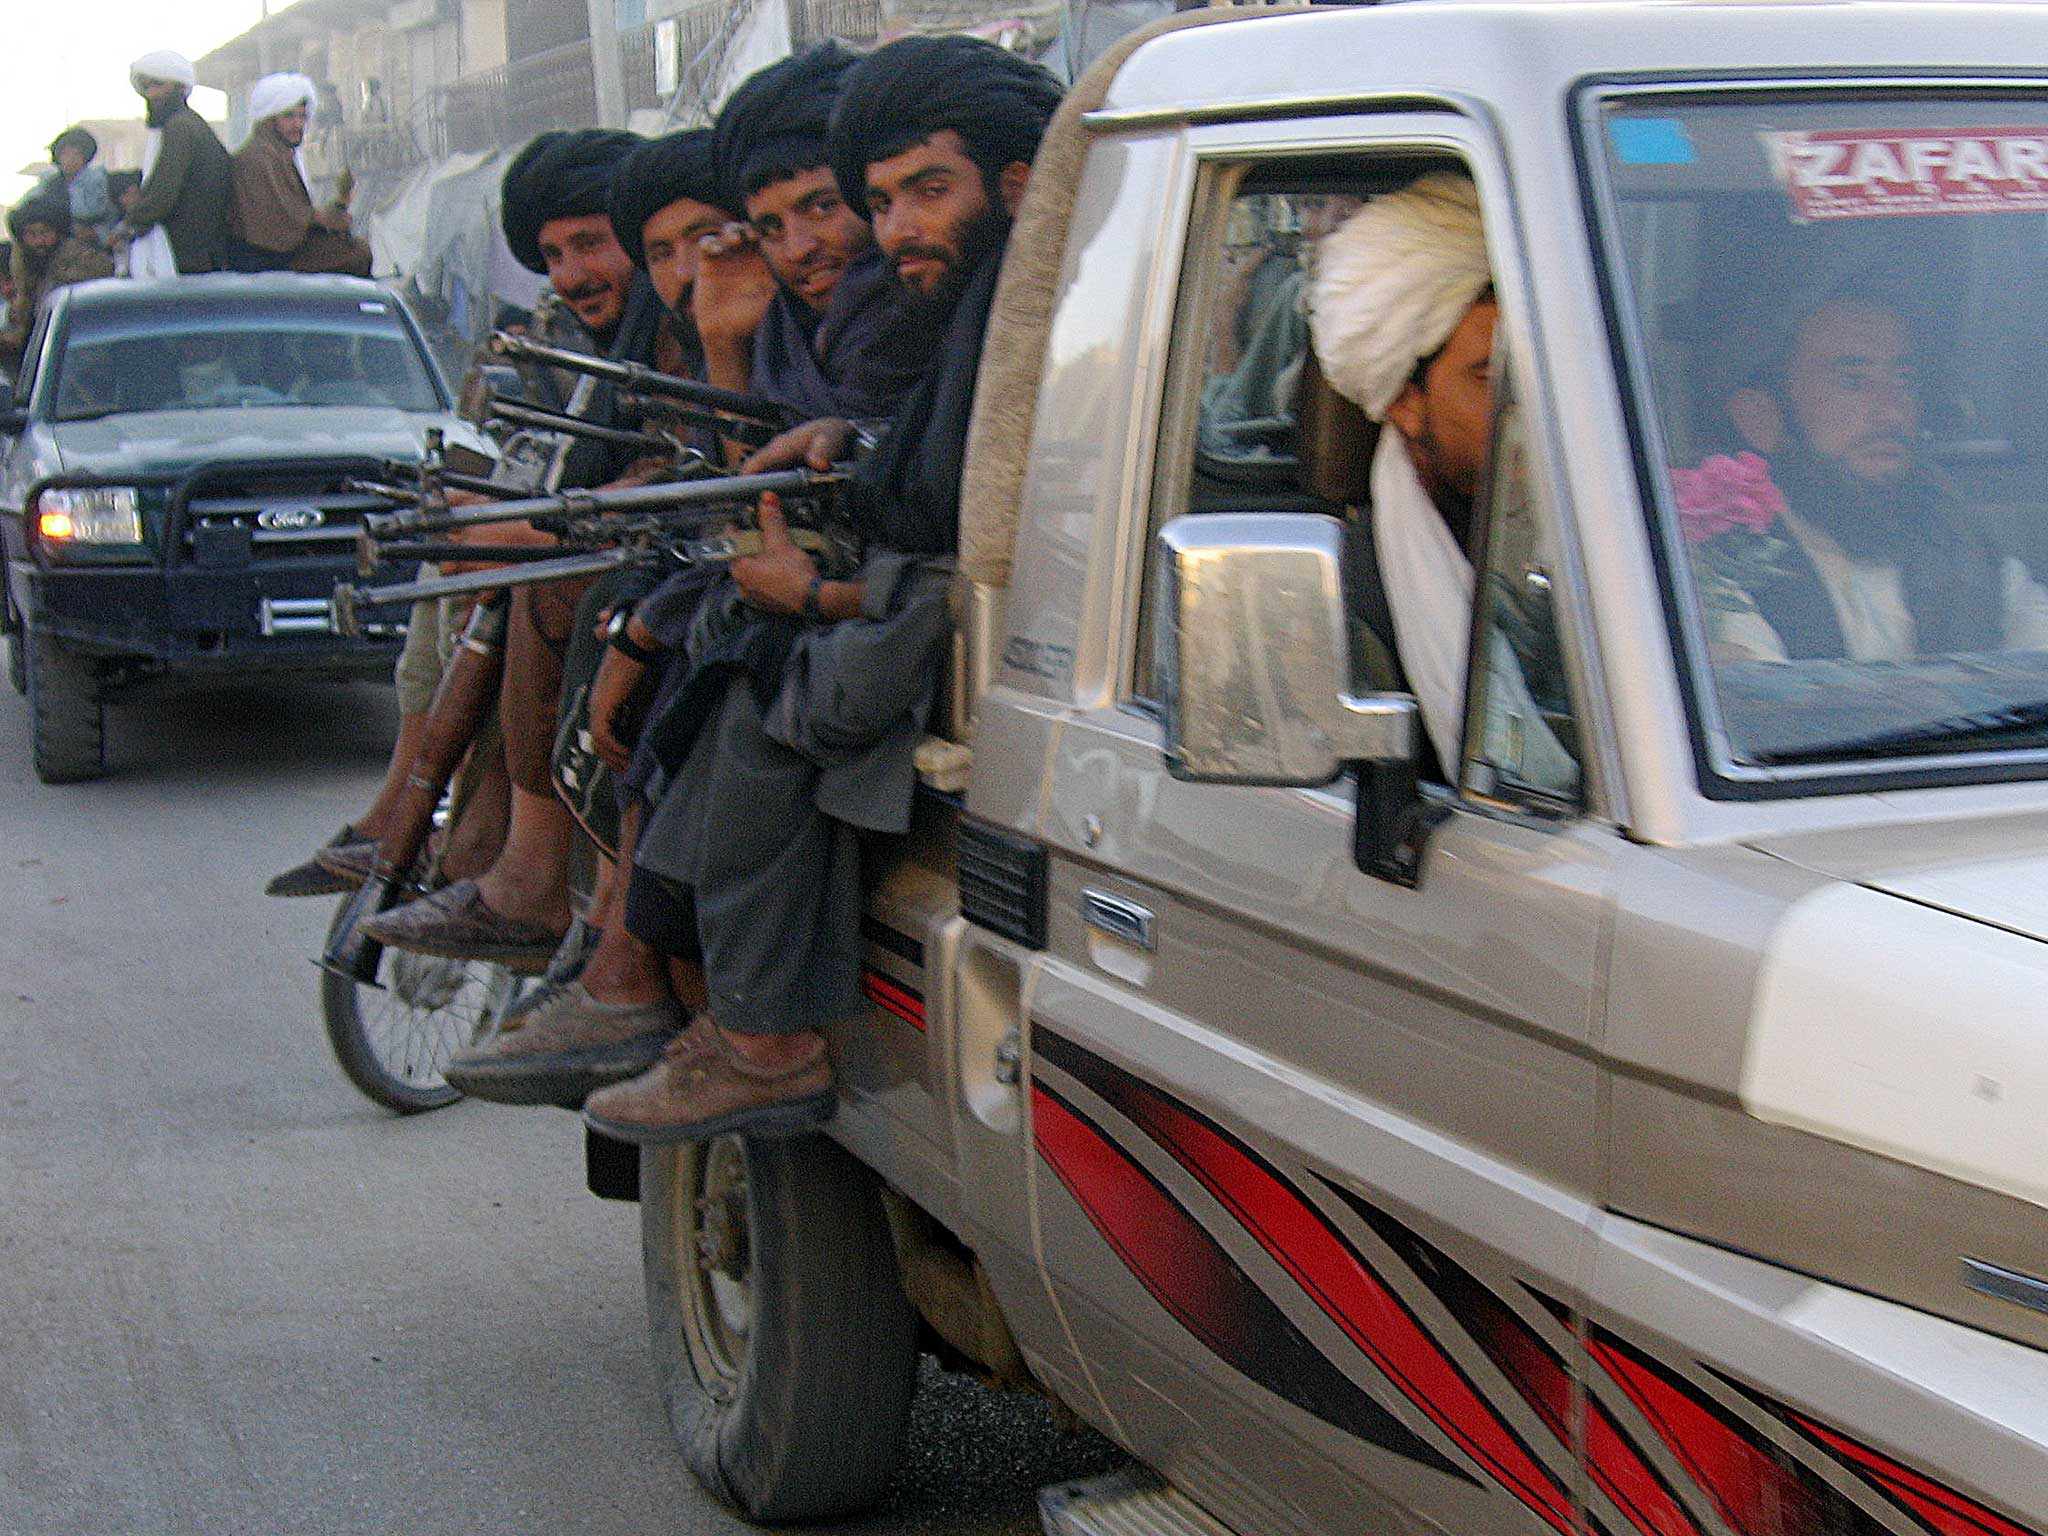 a history of the taliban in the middle east Middle east africa inequality cities  afghan history is certainly littered with occasions when foreign invaders were humiliated  from osama bin laden and taliban commanders to the warlords.